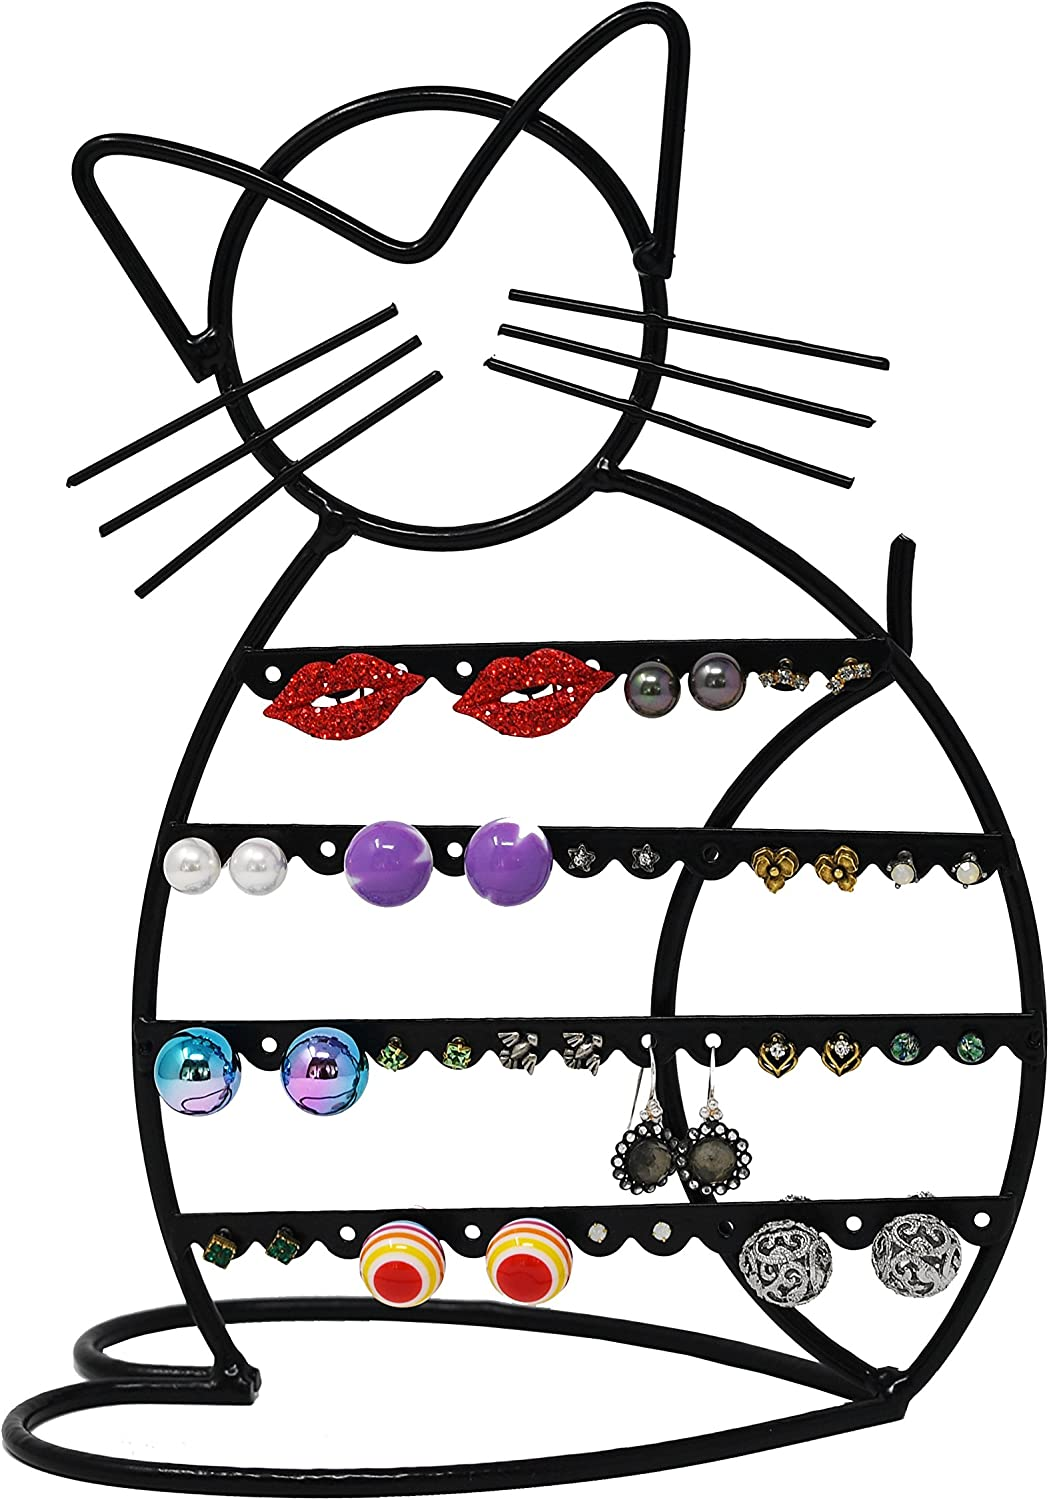 ARAD Cat-Shaped Earring Holder, Jewelry Rack, Display Organizer for Piercings (Black Finish)